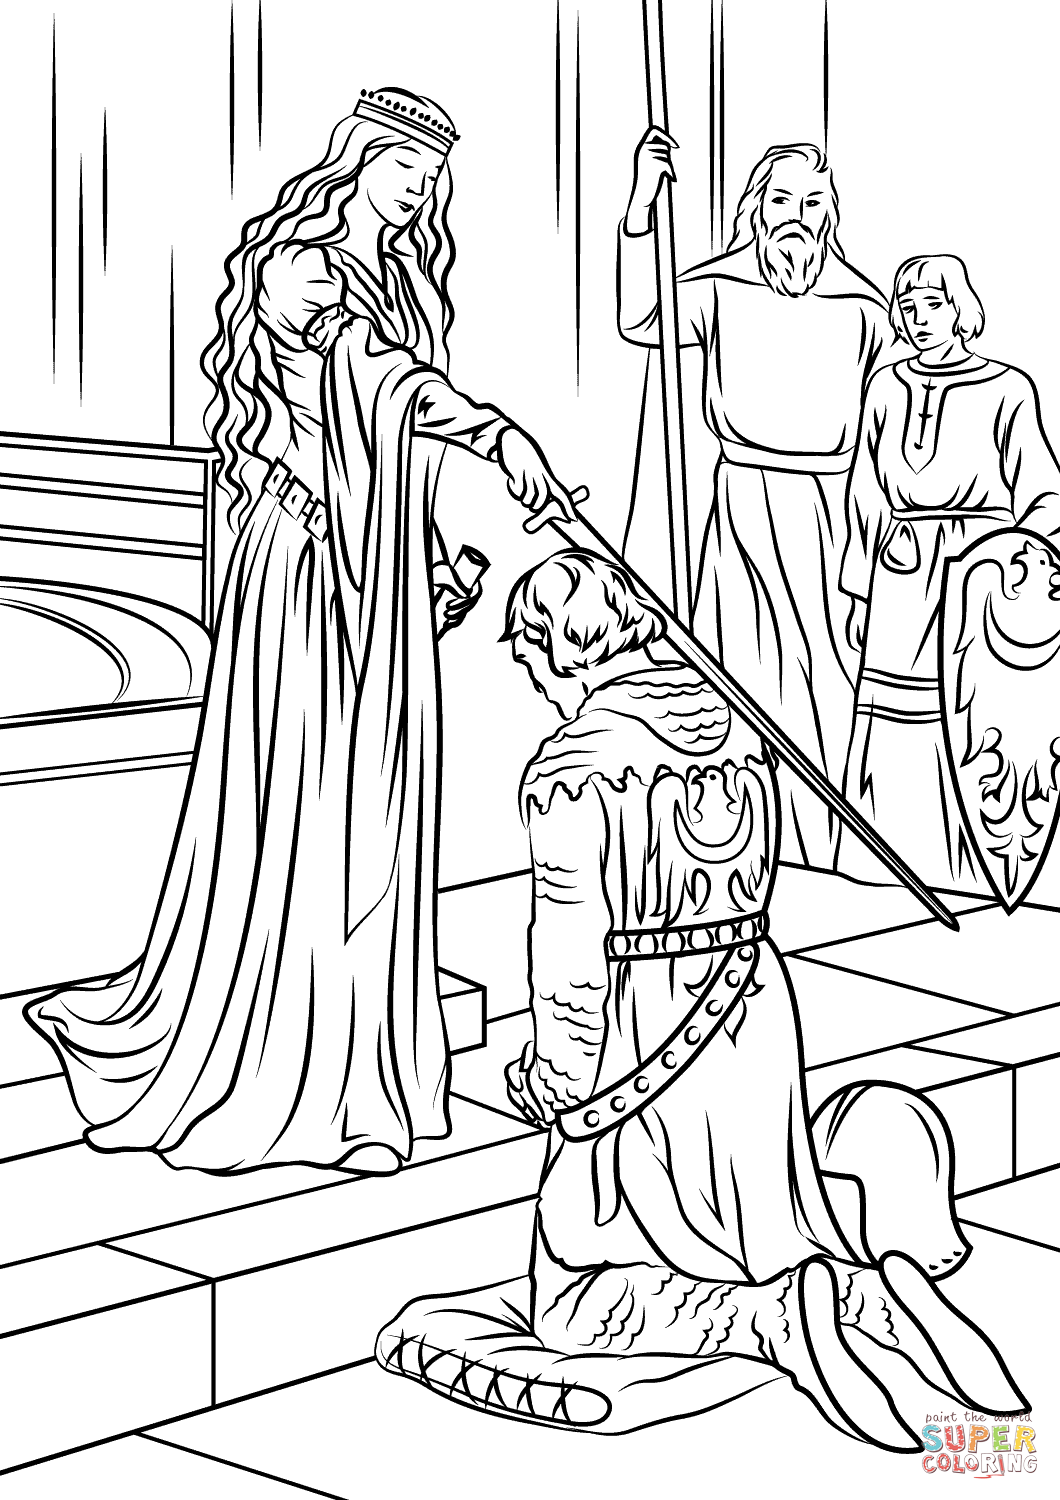 medieval colouring sheets medieval coloring pages to download and print for free medieval colouring sheets